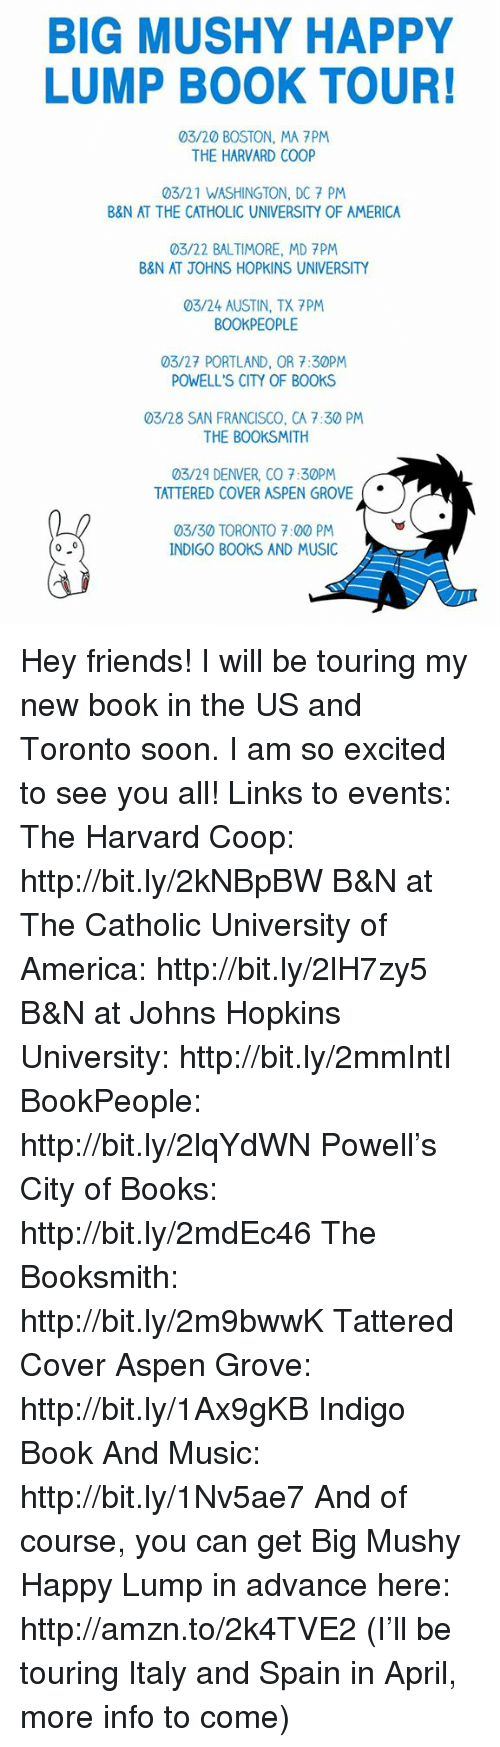 Memes, Aspen, and Baltimore: BIG MUSHY HAPPY  LUMP BOOK TOUR!  03/20 BOSTON, MA PM  THE HARVARD COOP  03/21 WASHINGTON, DC 7 PM  B&N AT THE CATHOLIC UNIVERSITY OF AMERICA  03/22 BALTIMORE, MD 7PM  B&N AT JOHNS HOPKINS UNIVERSITY  03/24 AUSTIN, TX 7PM  BOOKPEOPLE  03/27 PORTLAND, OR 7:30PM  POWELL'S CITY OF BOOKS  03/28 SAN FRANCISCO, CA 7:30 PM  THE BOOKSMITH  03/29 DENVER, CO 7:30PM  TATTERED COVER ASPEN GROVE  03/30 TORONTO 7:00 PM  0 0  INDIGO BOOKS AND MUSIC Hey friends! I will be touring my new book in the US and Toronto soon. I am so excited to see you all!  Links to events:  The Harvard Coop: http://bit.ly/2kNBpBW  B&N at The Catholic University of America: http://bit.ly/2lH7zy5  B&N at Johns Hopkins University: http://bit.ly/2mmIntI  BookPeople: http://bit.ly/2lqYdWN  Powell's City of Books: http://bit.ly/2mdEc46  The Booksmith: http://bit.ly/2m9bwwK  Tattered Cover Aspen Grove: http://bit.ly/1Ax9gKB  Indigo Book And Music: http://bit.ly/1Nv5ae7  And of course, you can get Big Mushy Happy Lump in advance here: http://amzn.to/2k4TVE2  (I'll be touring Italy and Spain in April, more info to come)